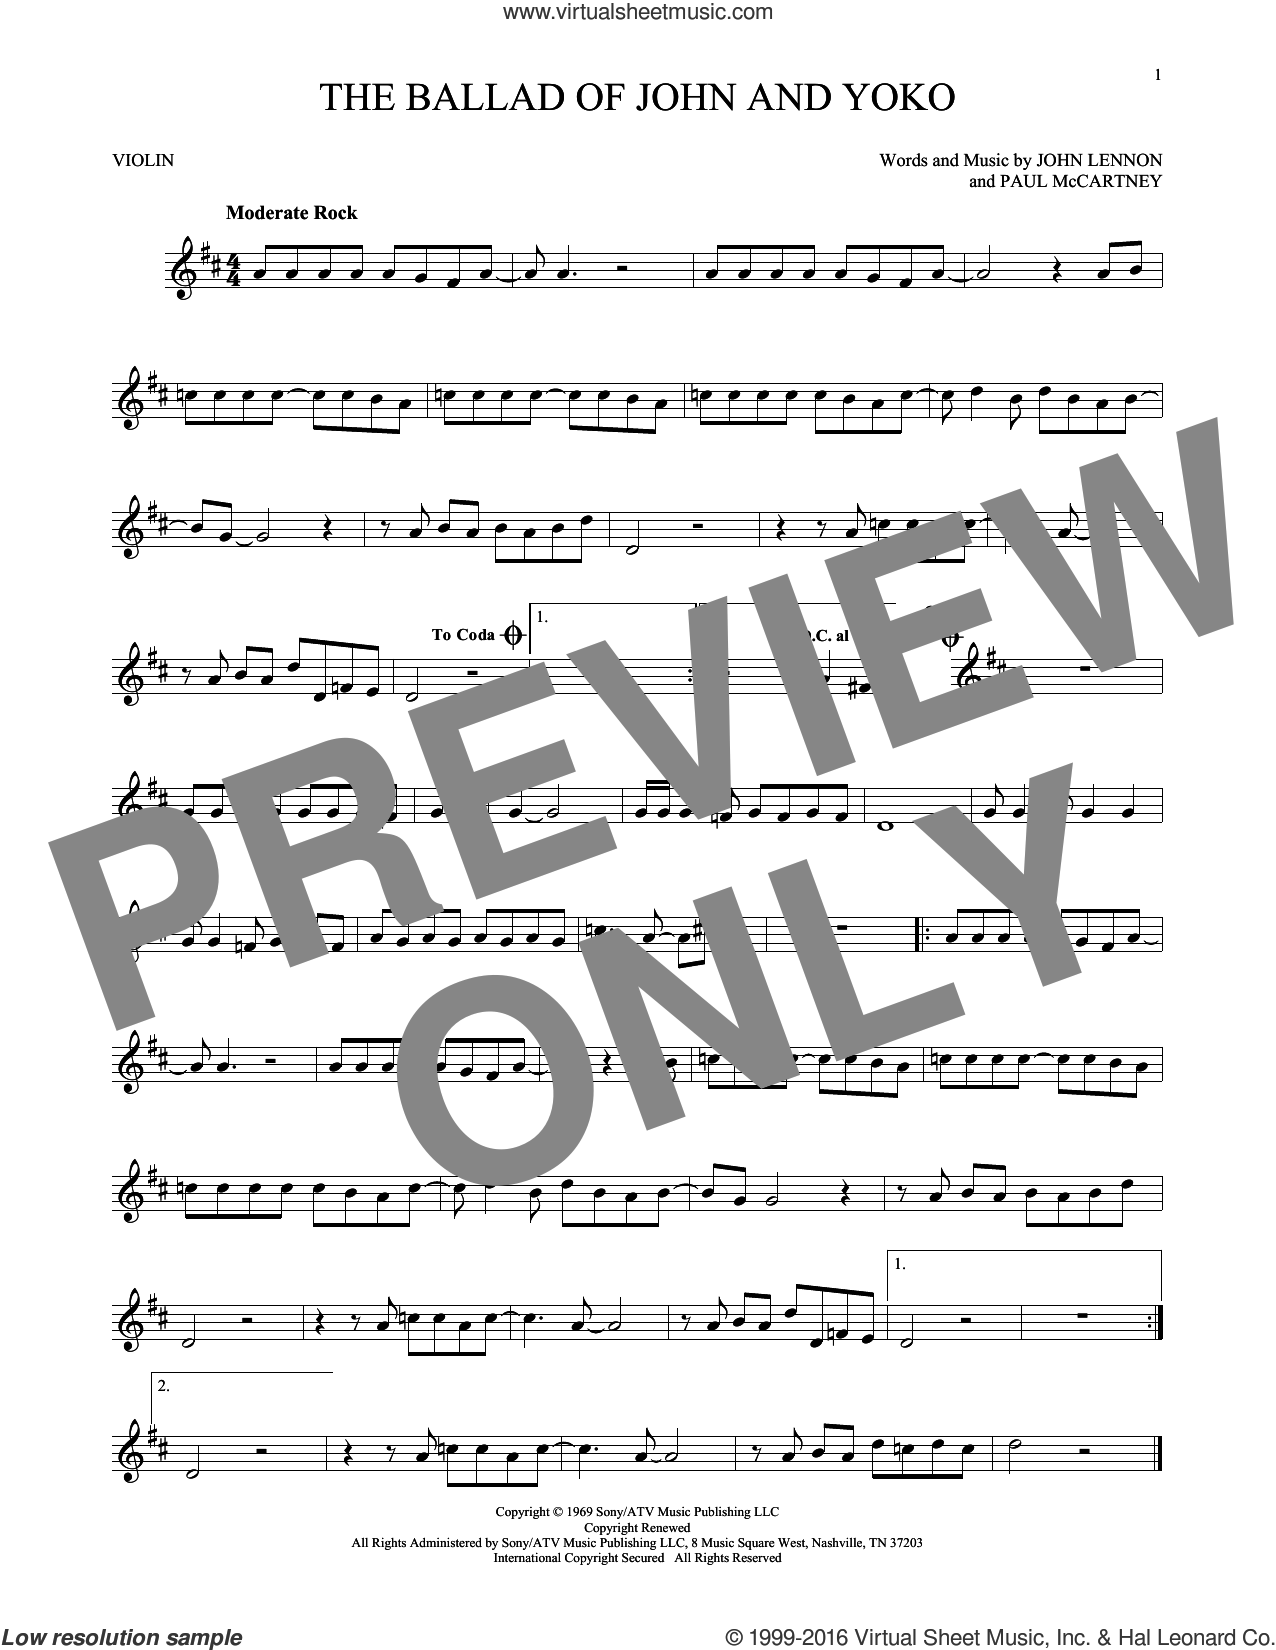 The Ballad Of John And Yoko sheet music for violin solo by The Beatles, John Lennon and Paul McCartney, intermediate